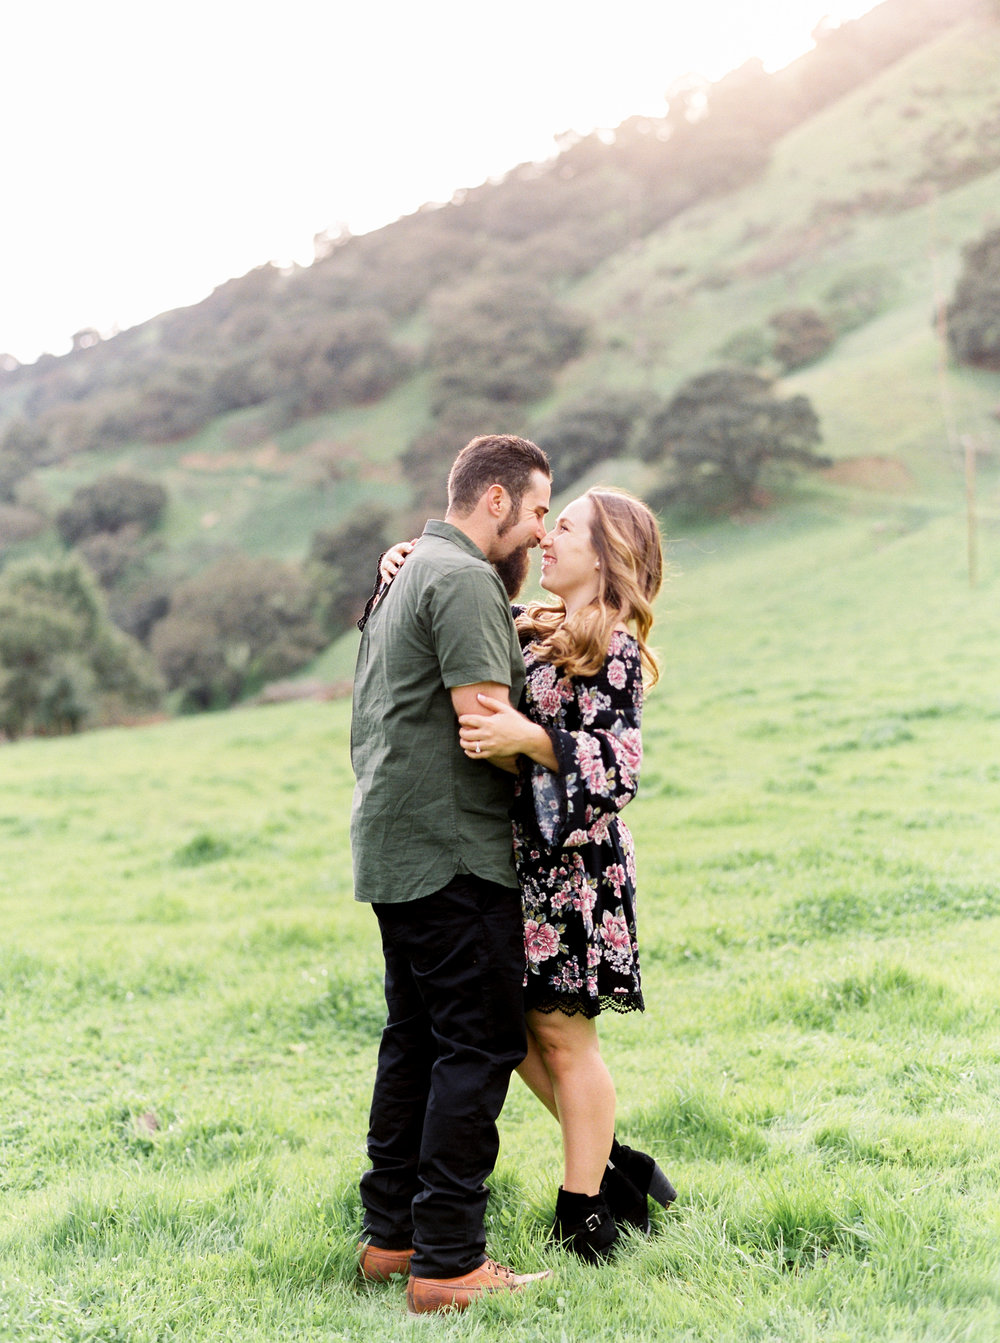 Sunol California Engagement Shoot - Kristine Herman Photography-26.jpg